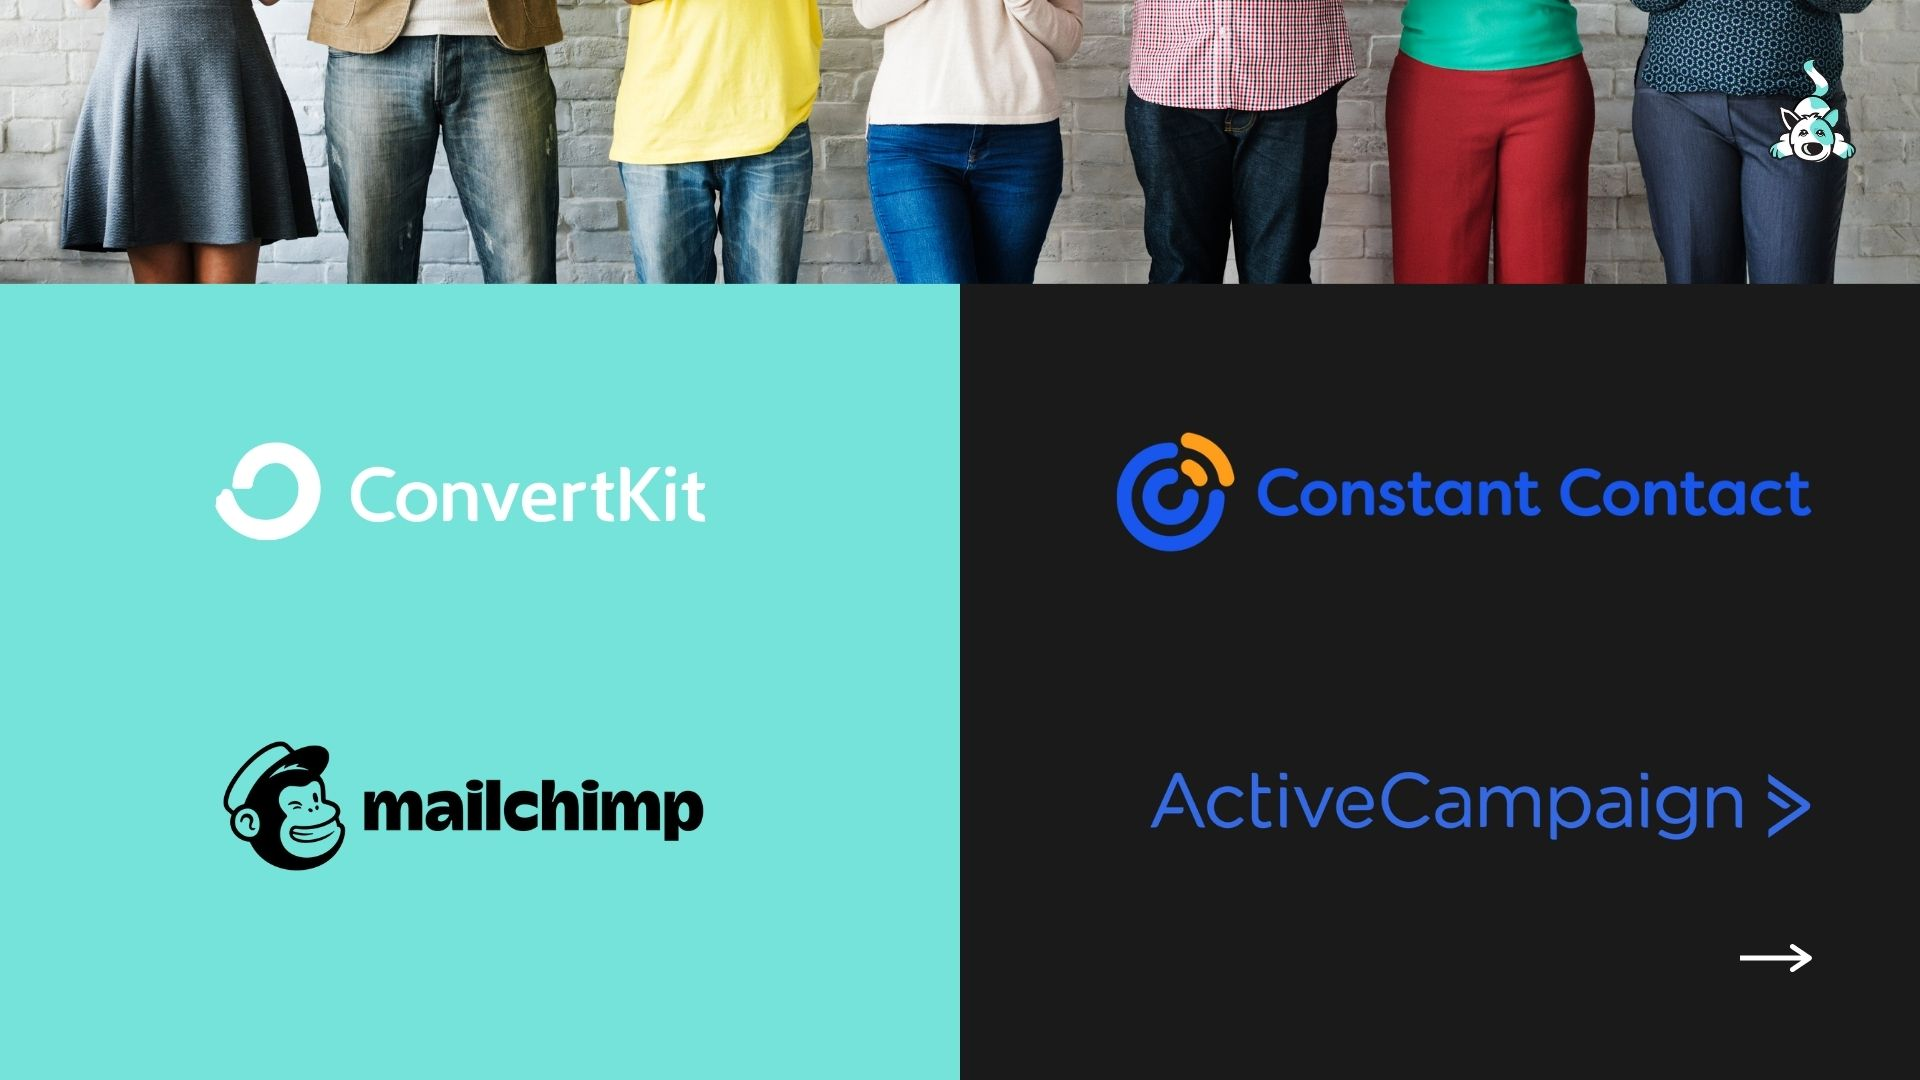 Logos for popular email marketing platforms, ConvertKit, Mailchimp, Constant Contact, and Active Campaign on a slide divided in half, half blue and half dark gray